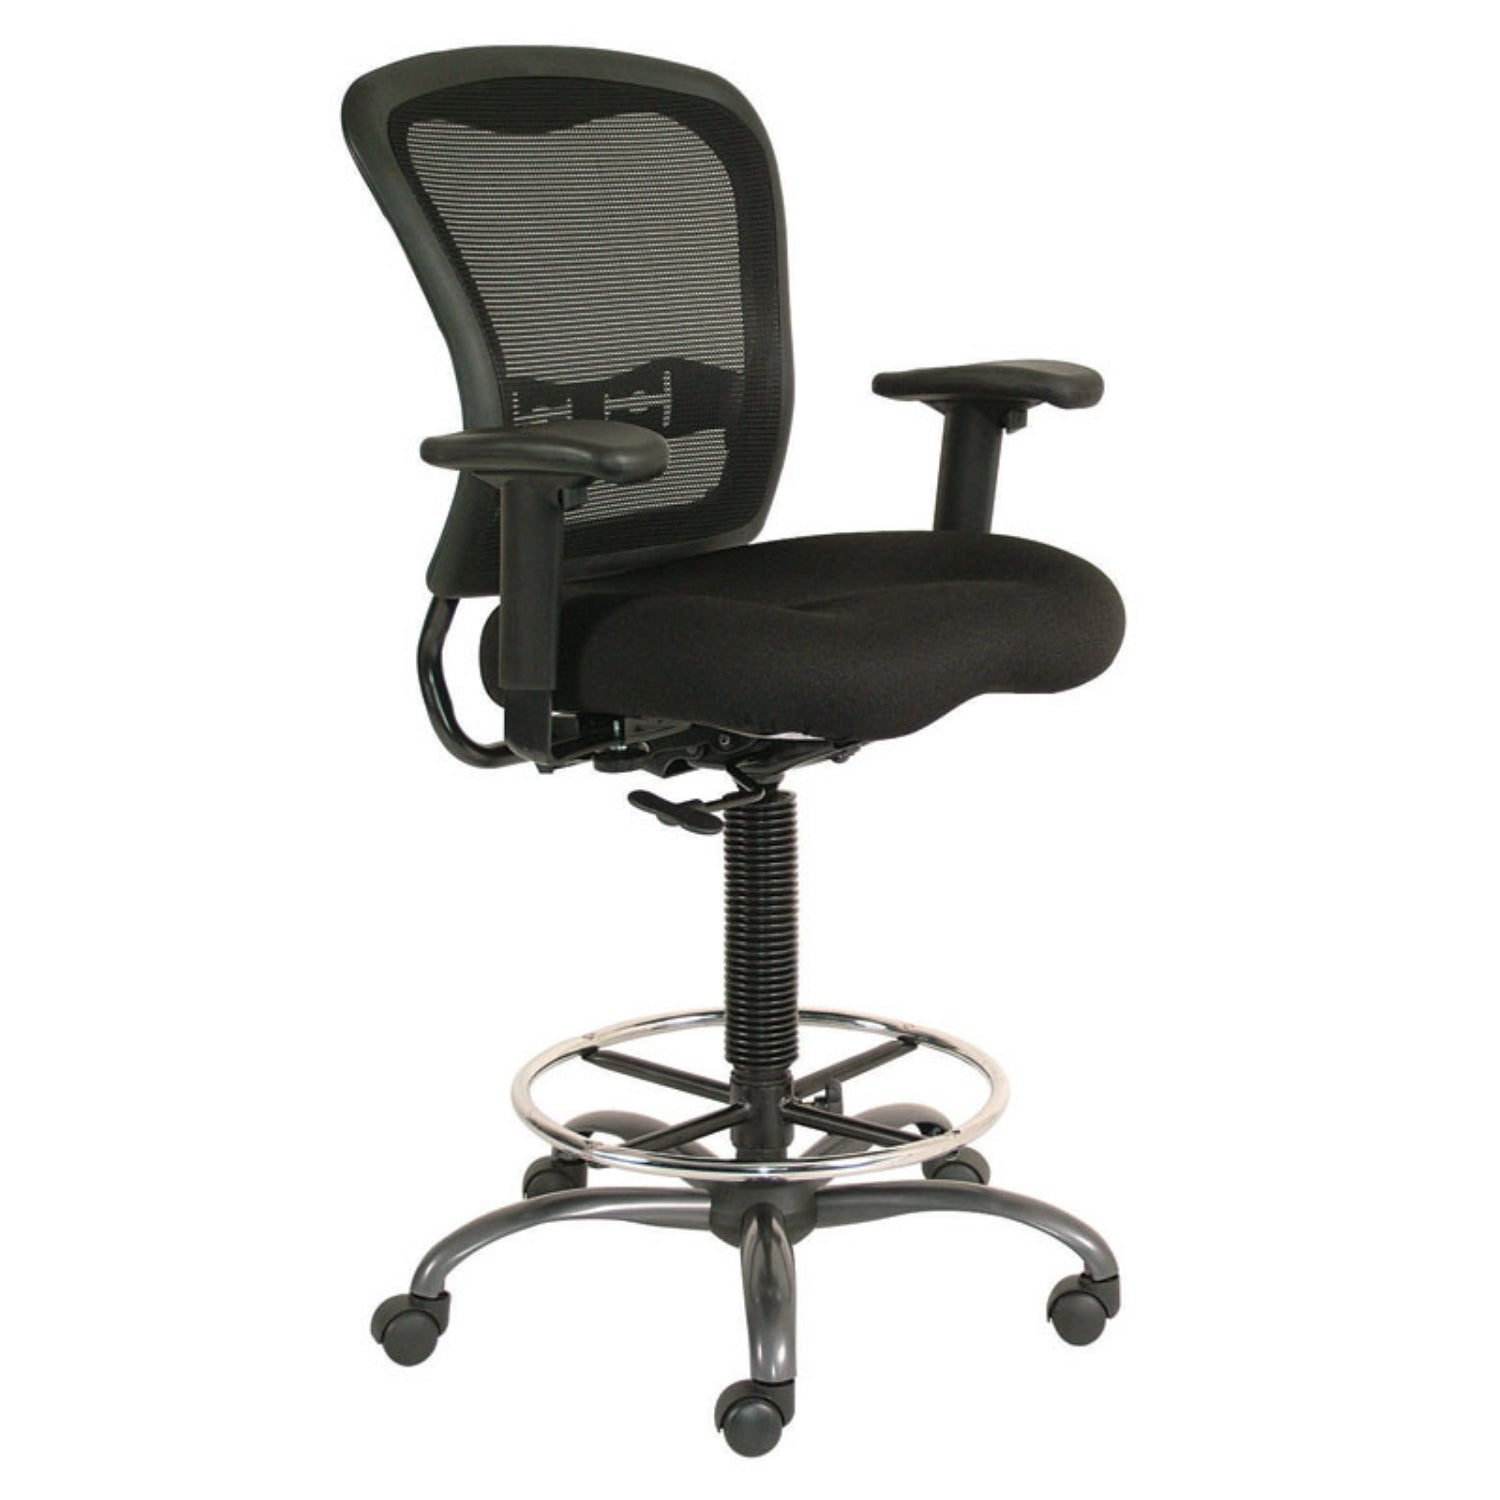 Duckys Office Furniture - Spice Drafting Stool - Duckys Office Furniture